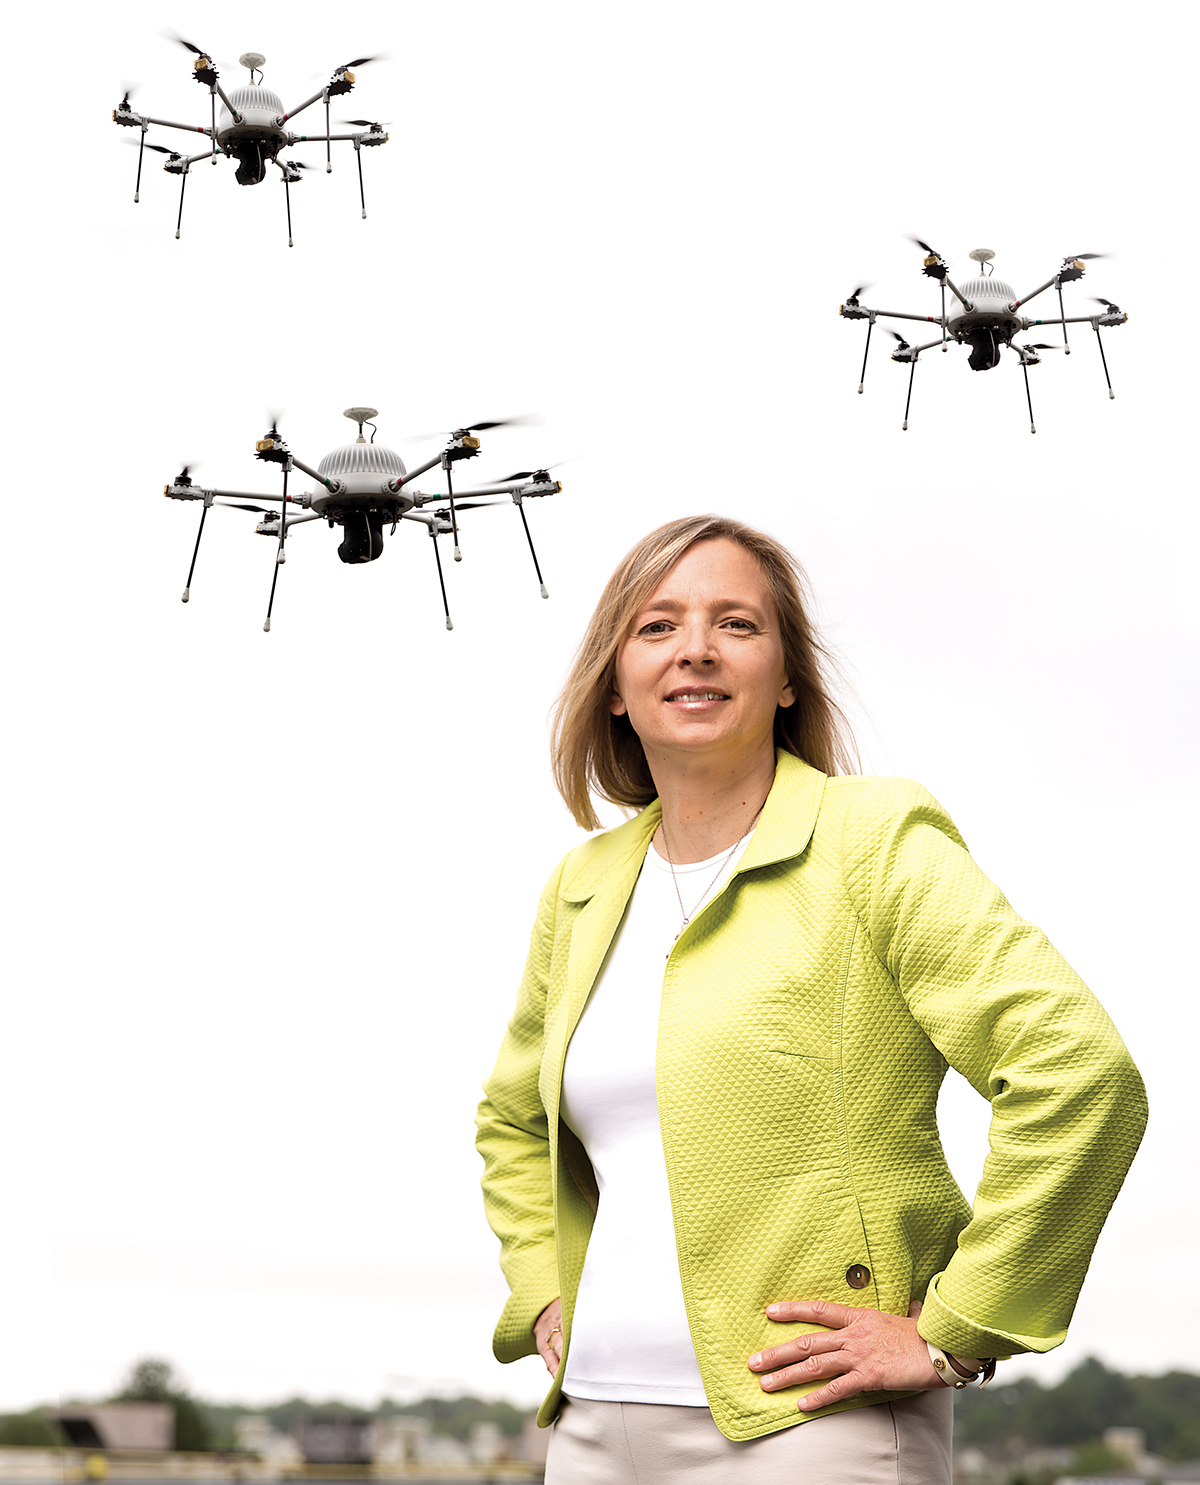 boston tech helen greiner drones